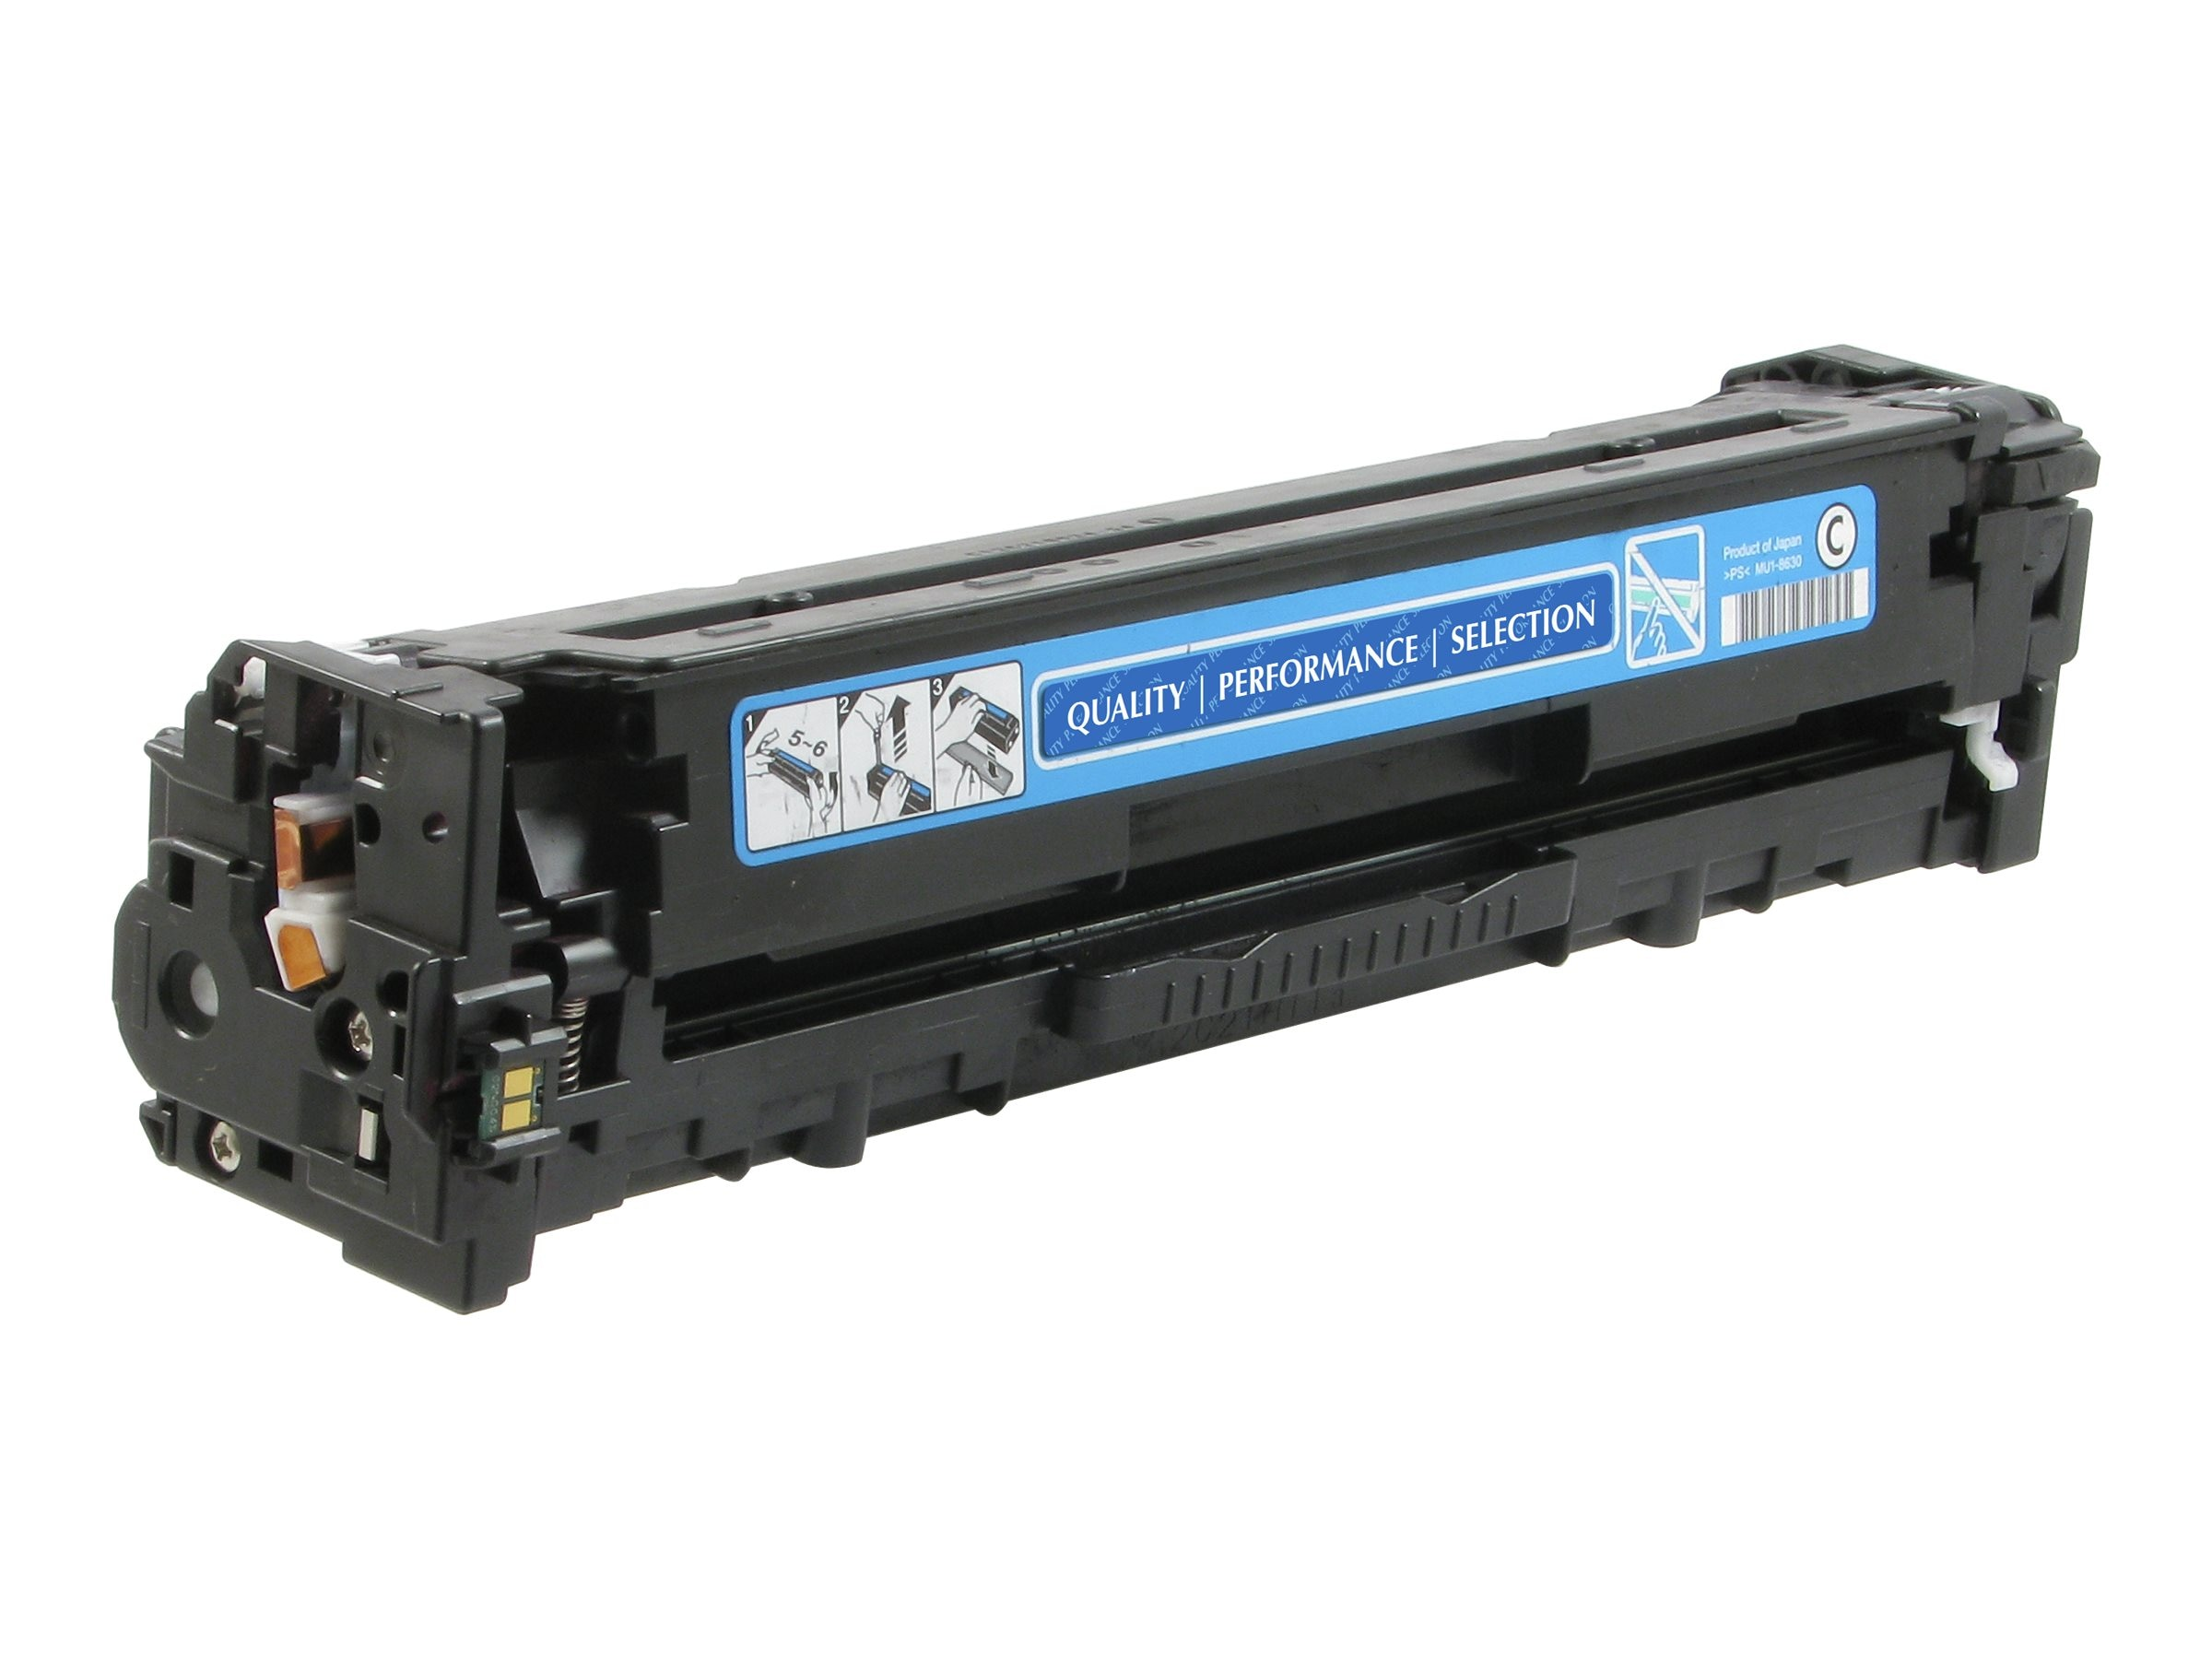 V7 CF211A Cyan Toner Cartridge for HP LaserJet 200 Color M251 M276